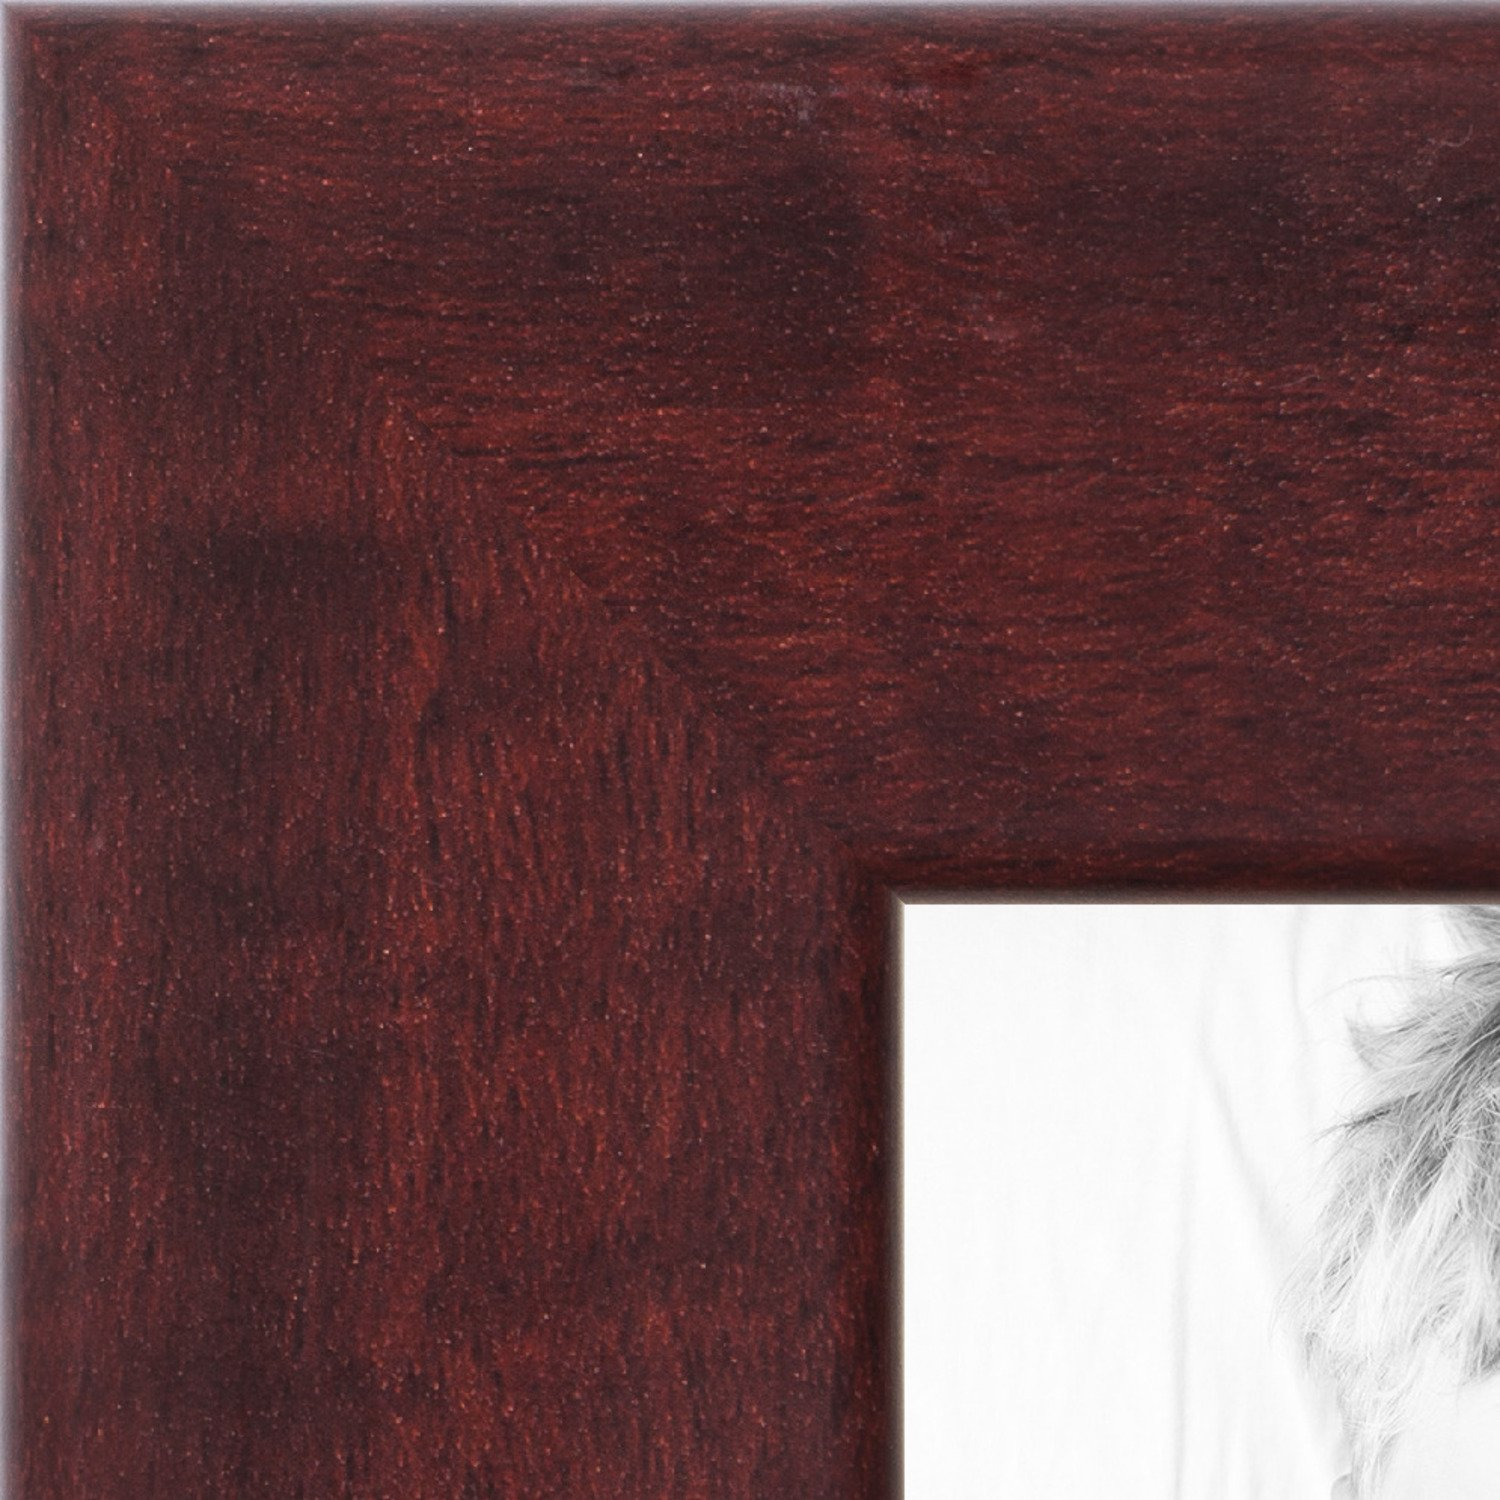 ArtToFrames 16x20 inch Cherry Style Picture Frame, WOMBW26-039-16x20 by ArtToFrames